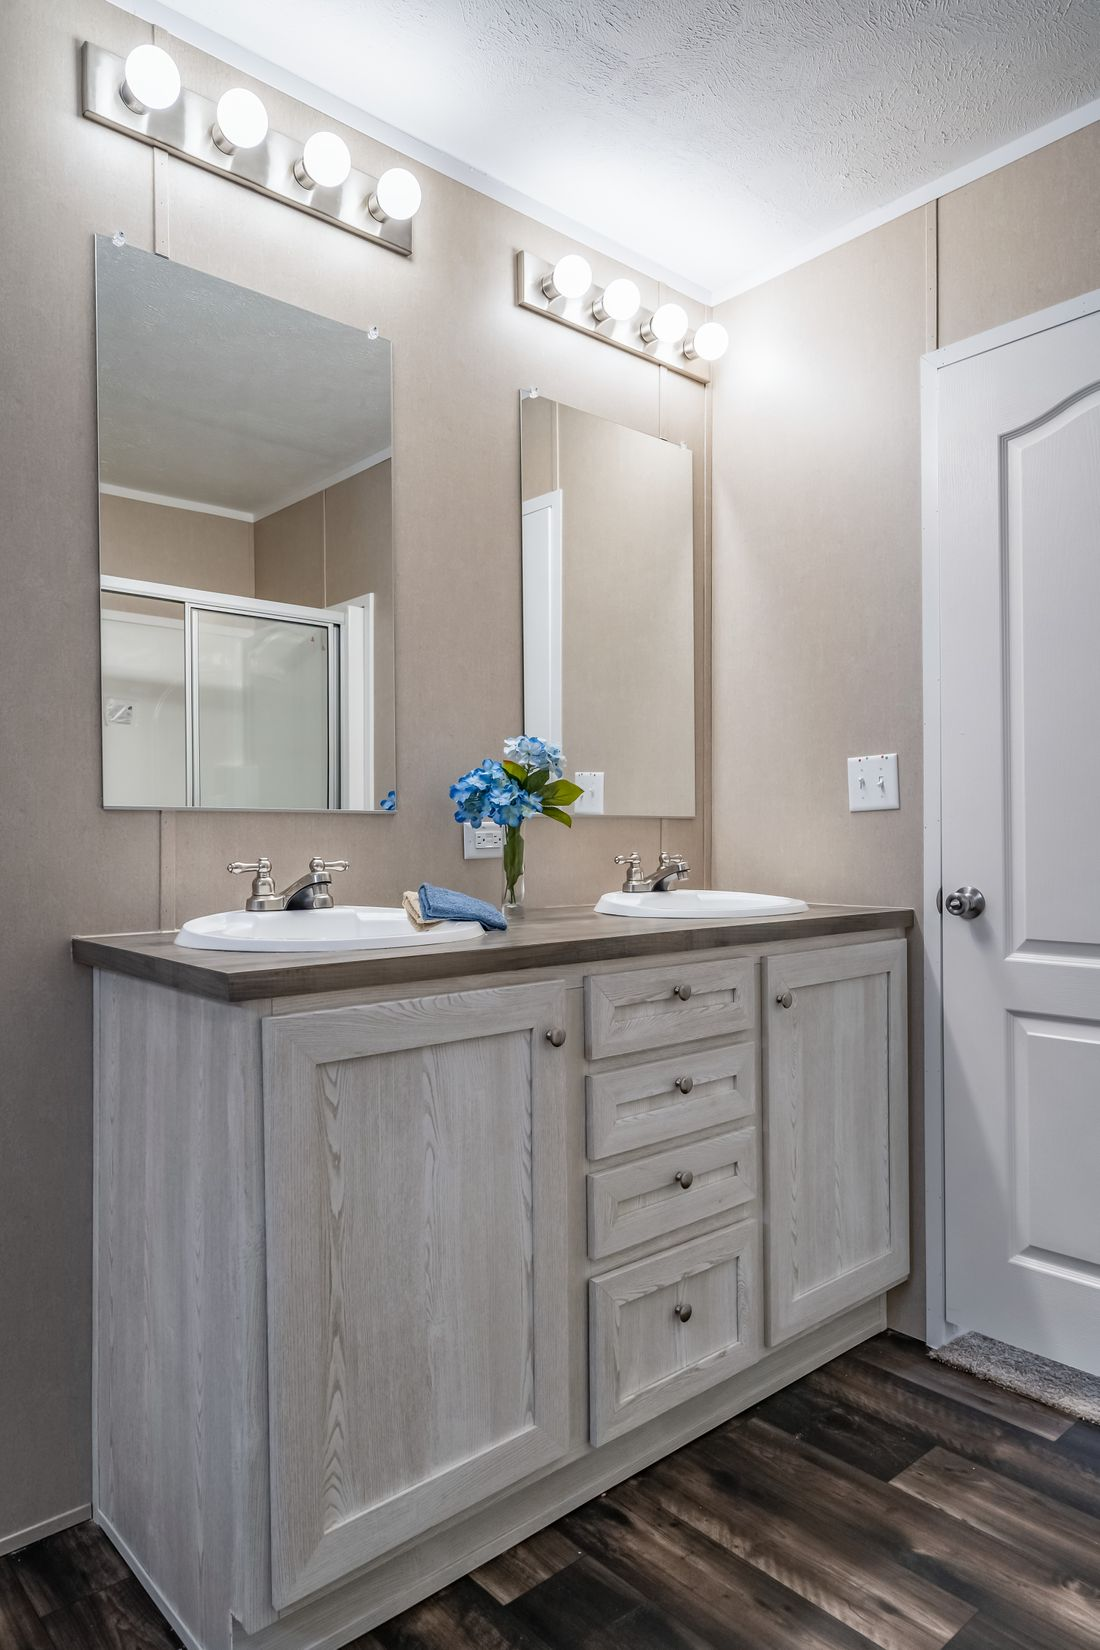 The ULTRA PRO 56A Master Bathroom. This Manufactured Mobile Home features 3 bedrooms and 2 baths.